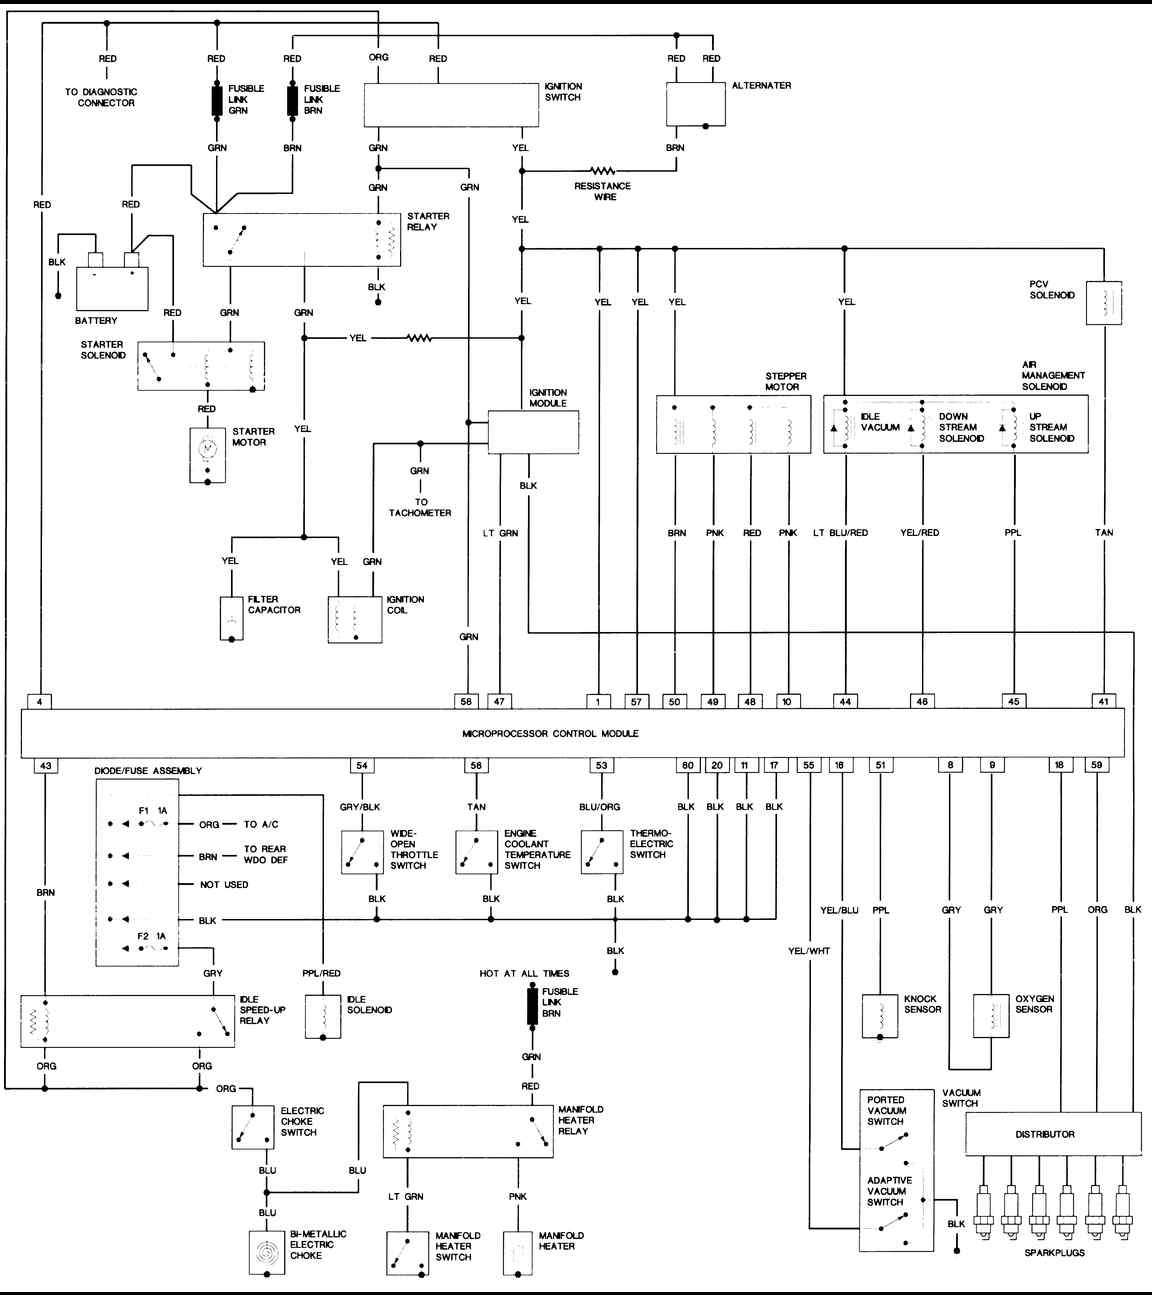 1987 jeep wrangler 4.2L engine 1987 jeep wrangler 4 2l engine(large) freeautomechanic jeep wrangler wiring diagram free at honlapkeszites.co